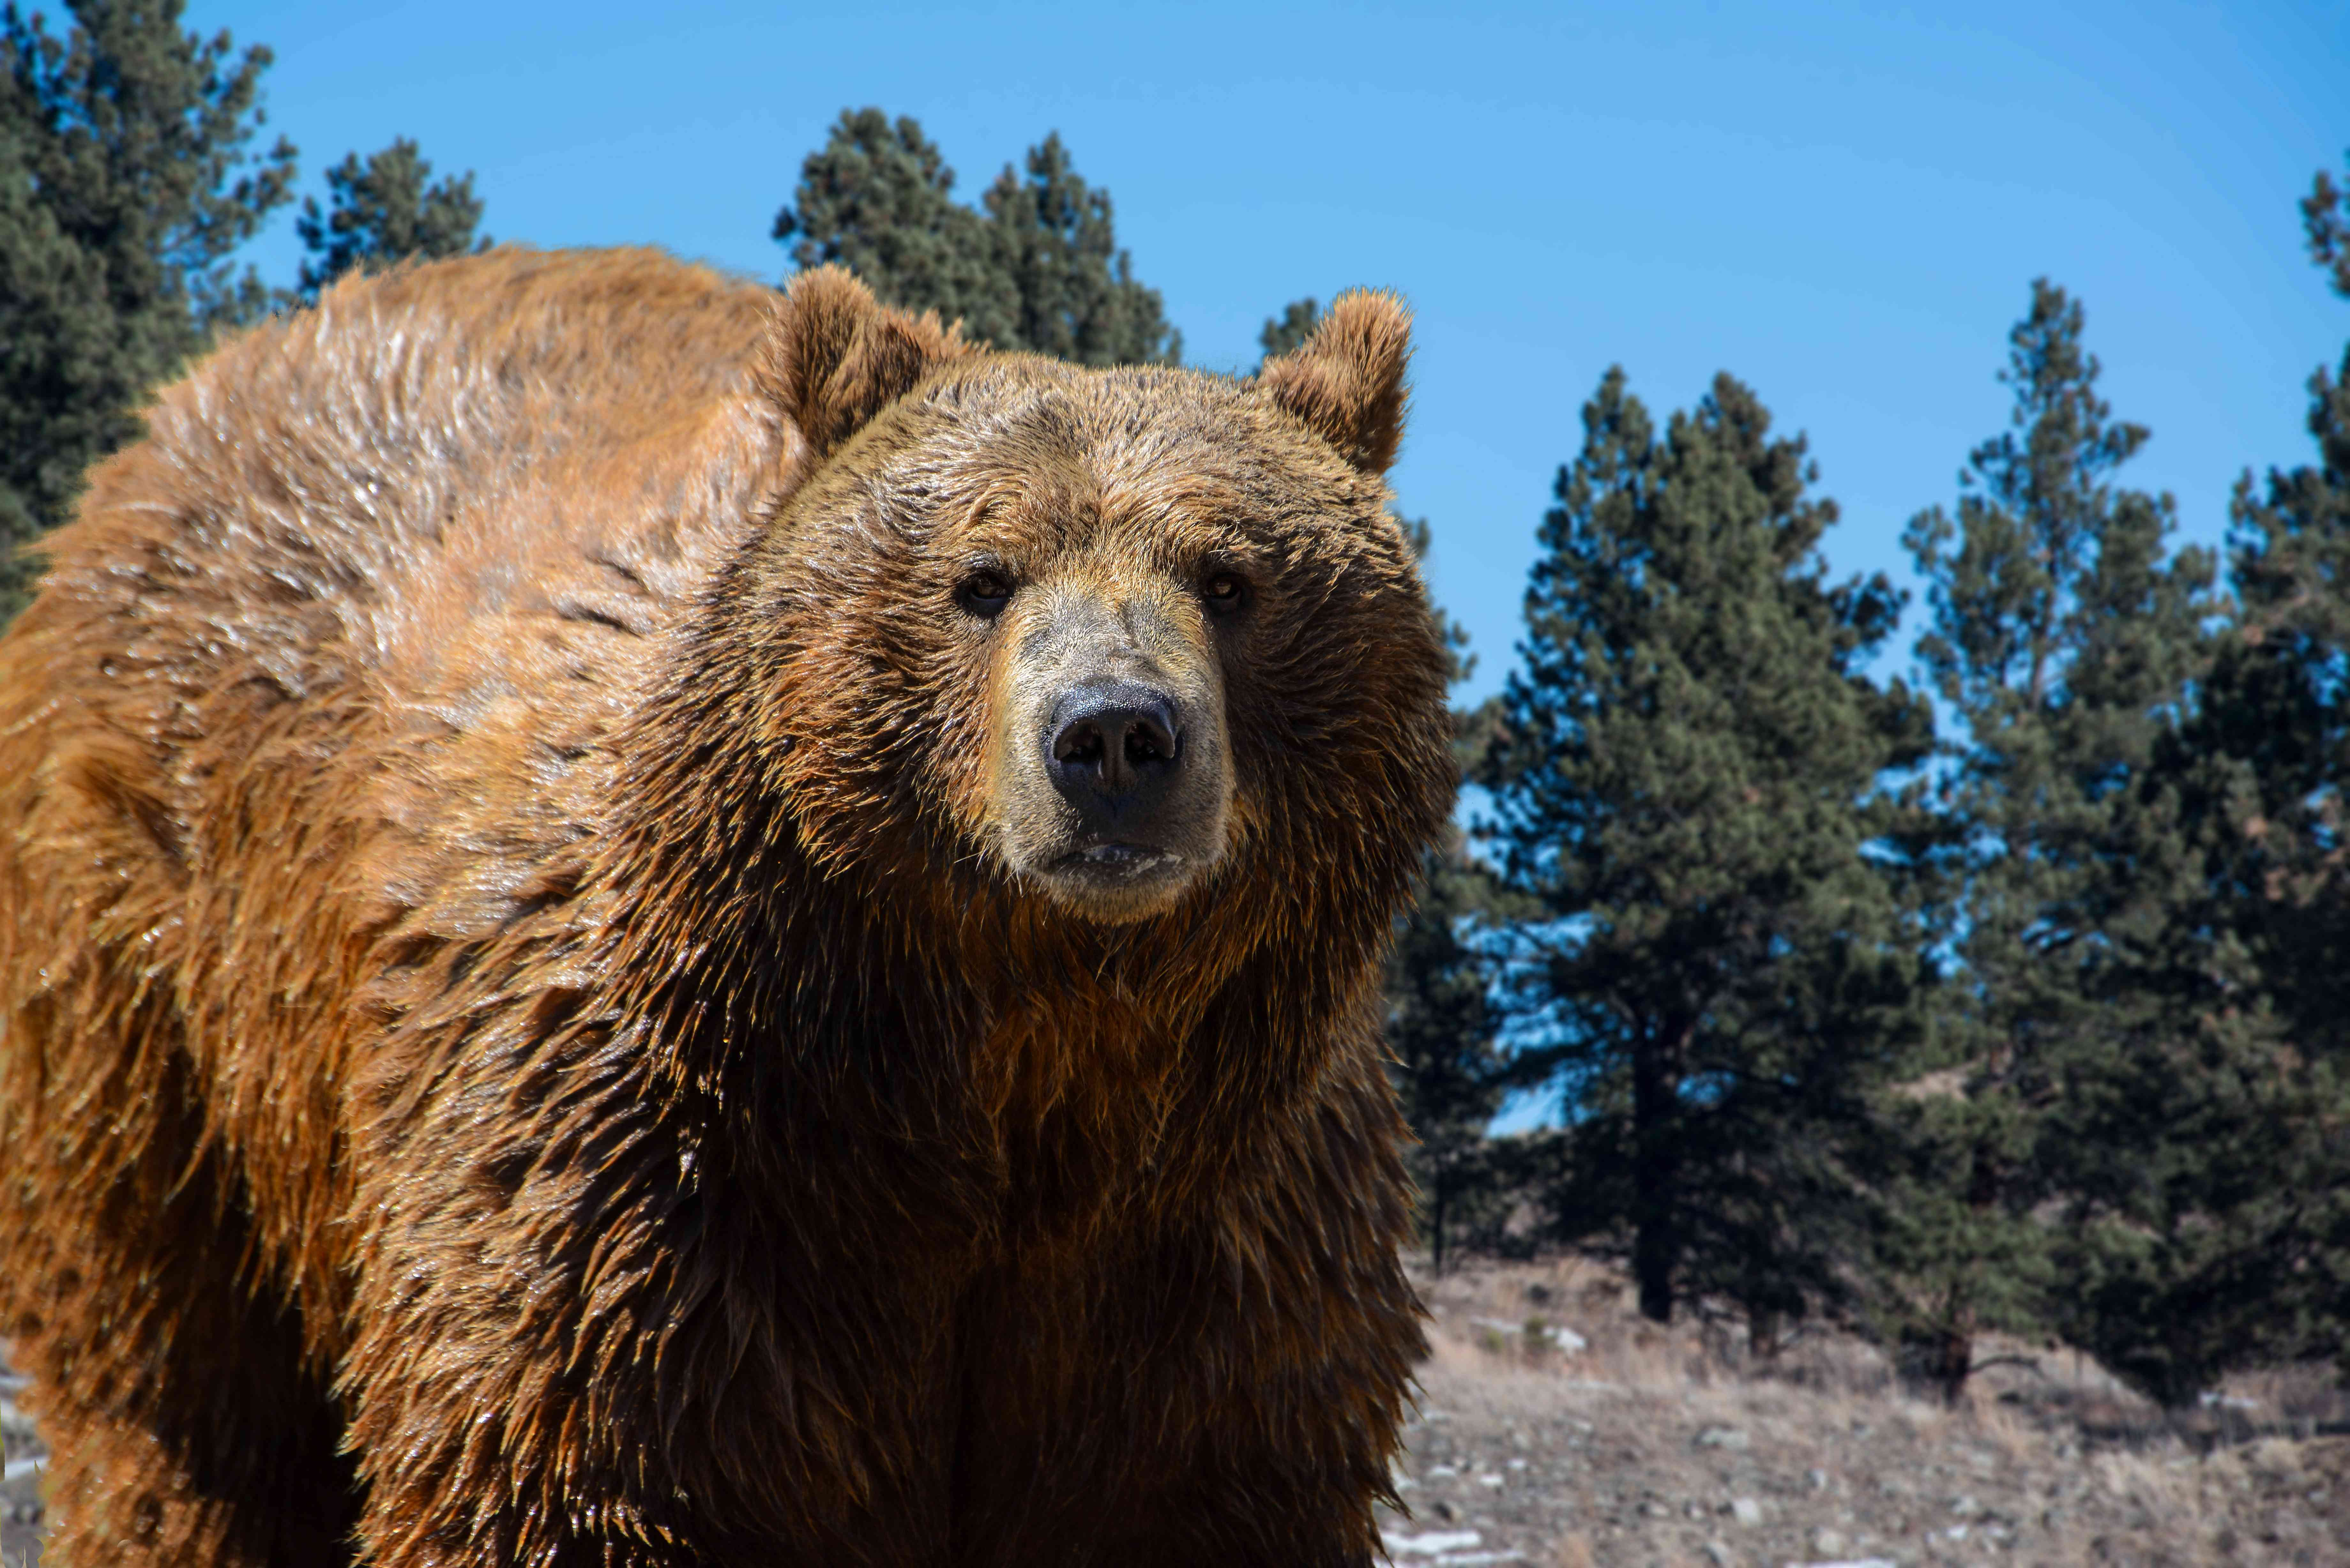 Grizzly bear closeup in pine forest mountains